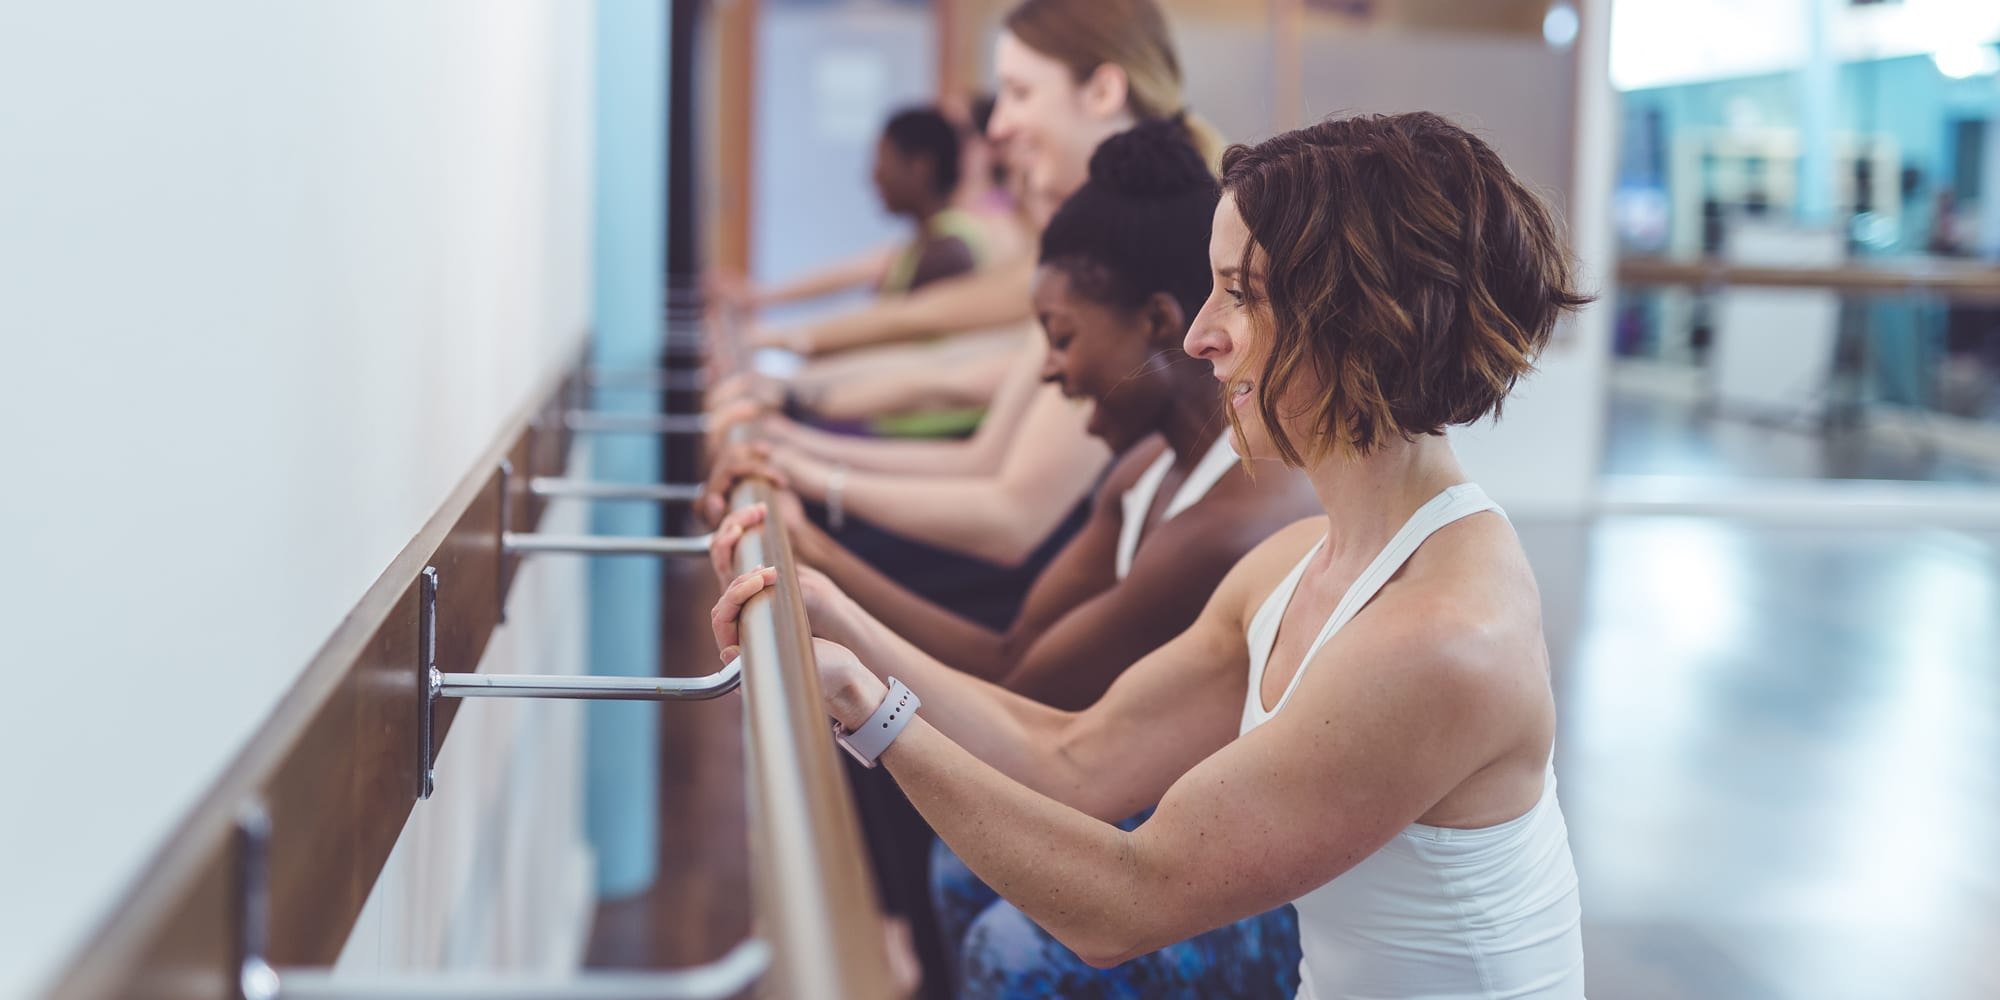 What to Wear For a Barre Workout